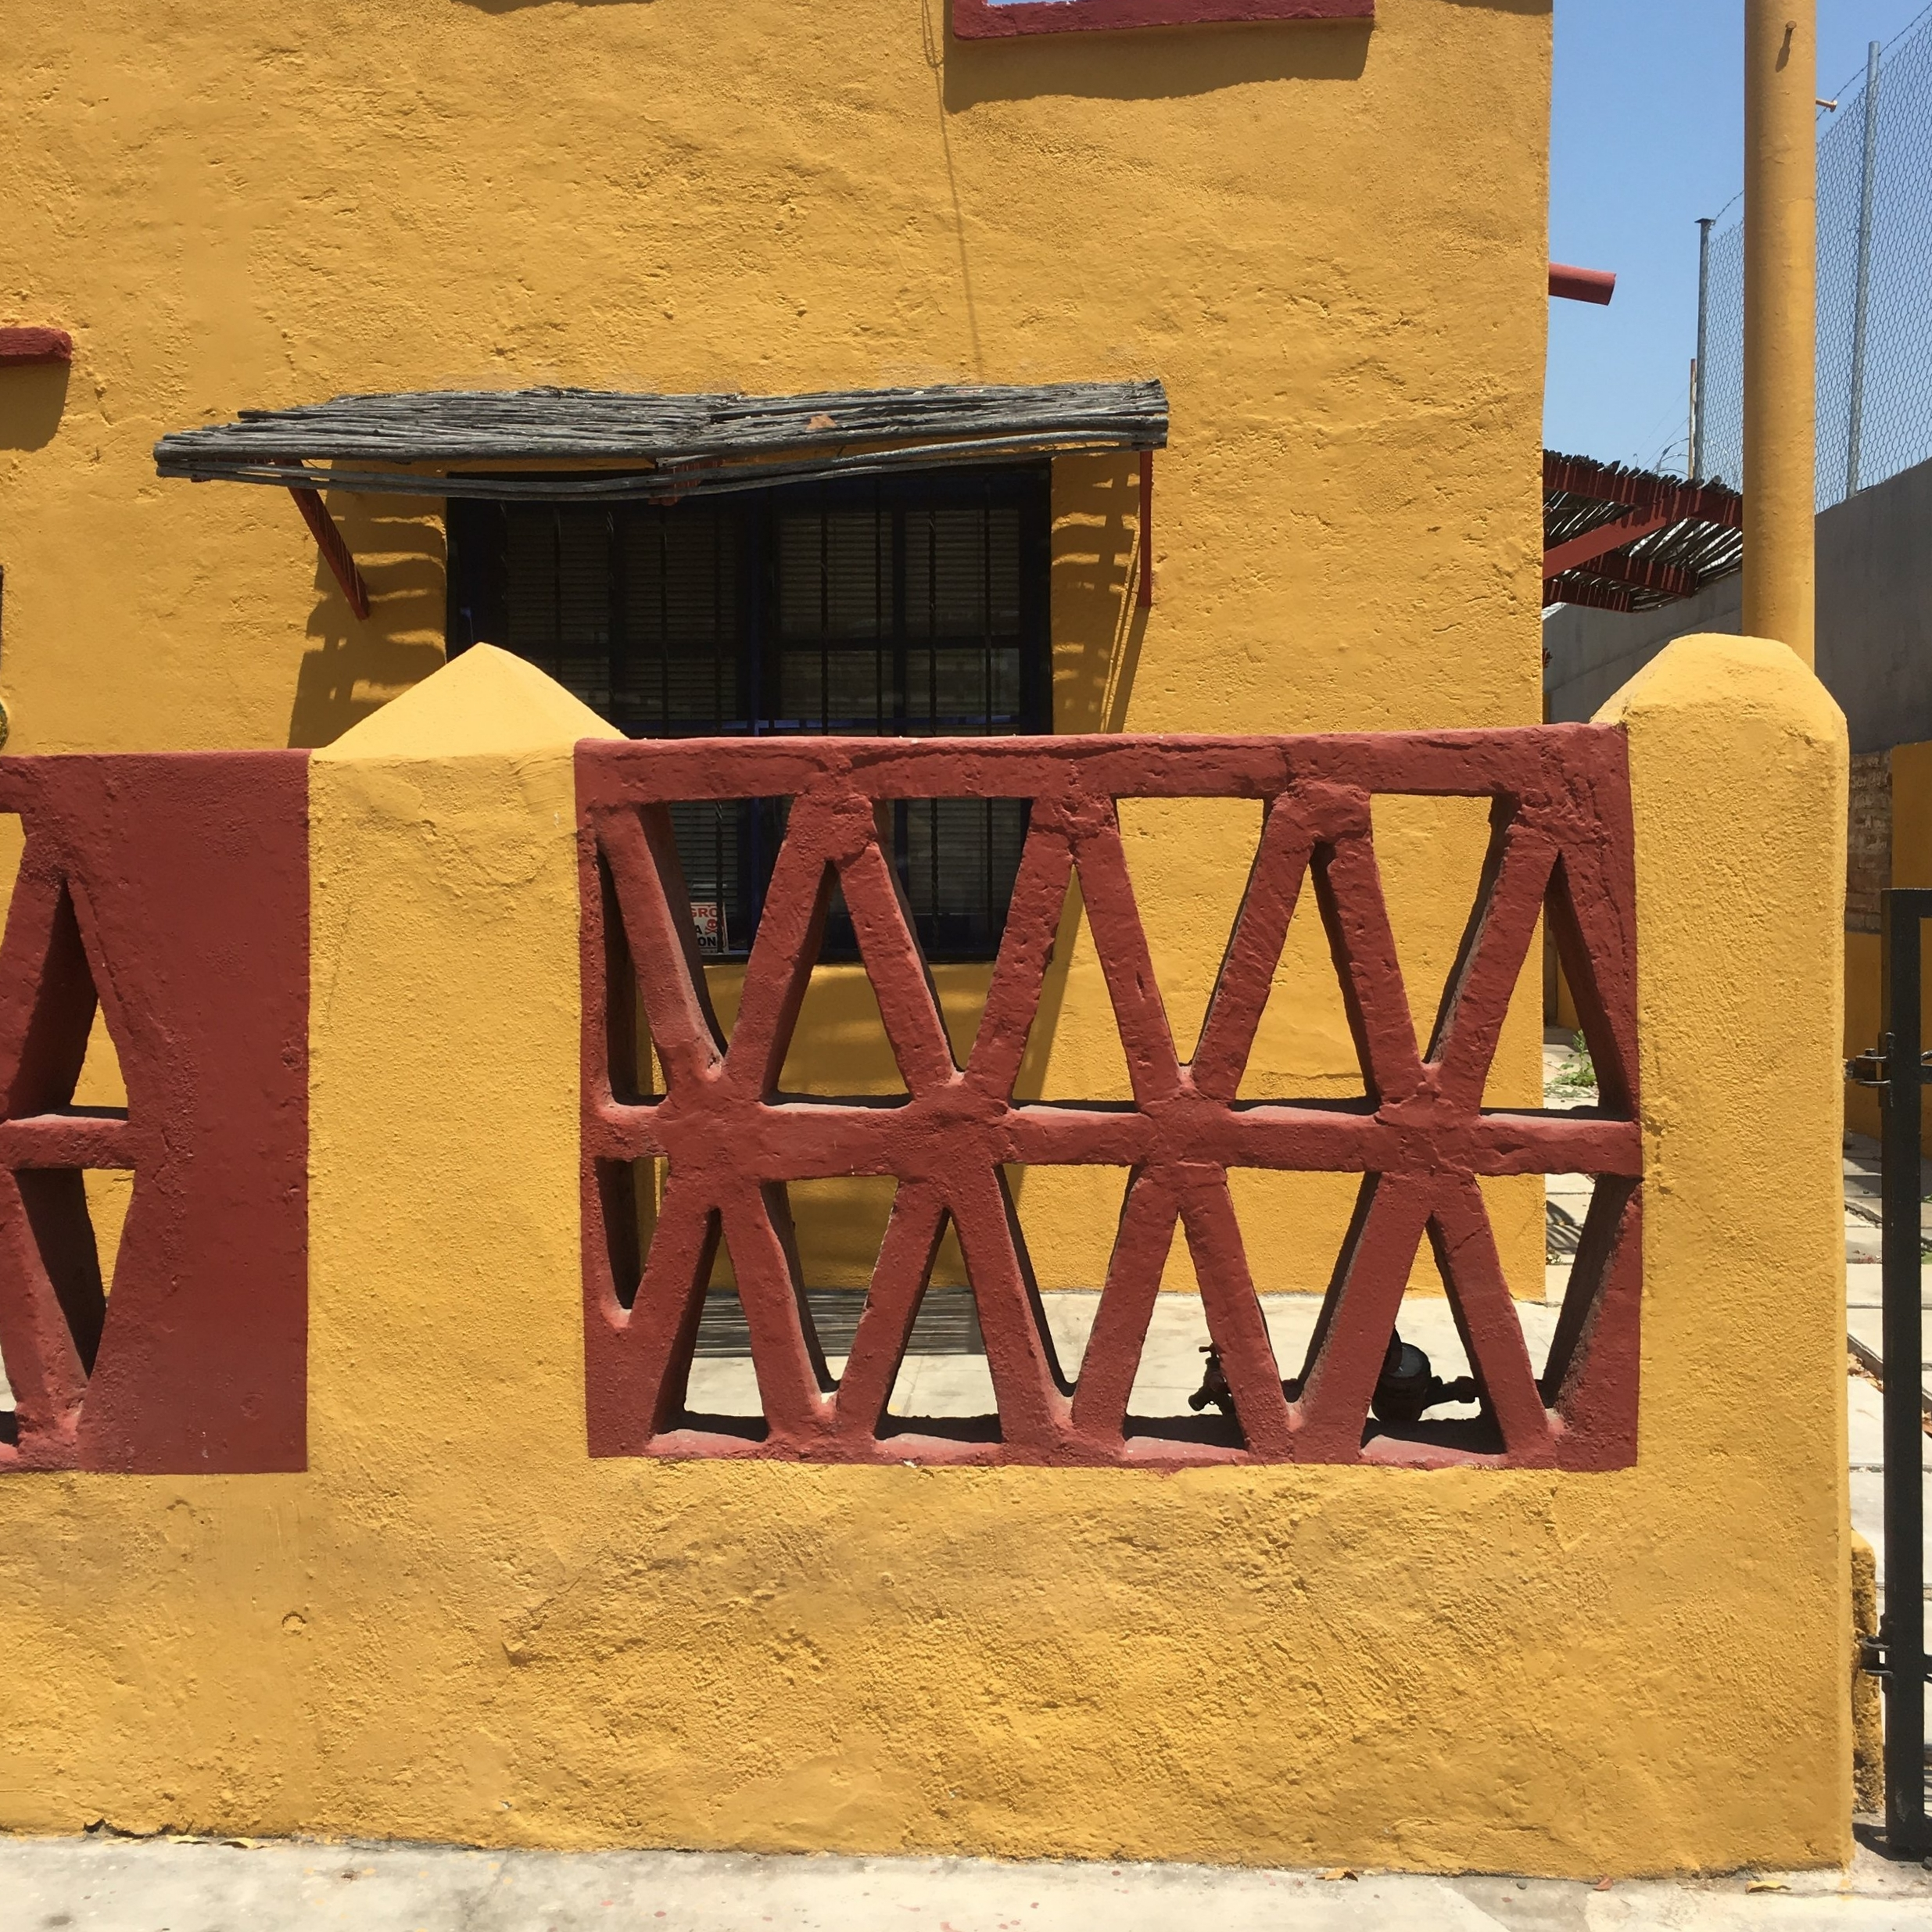 Orange house in La Paz, Mexico | Watson & Walls